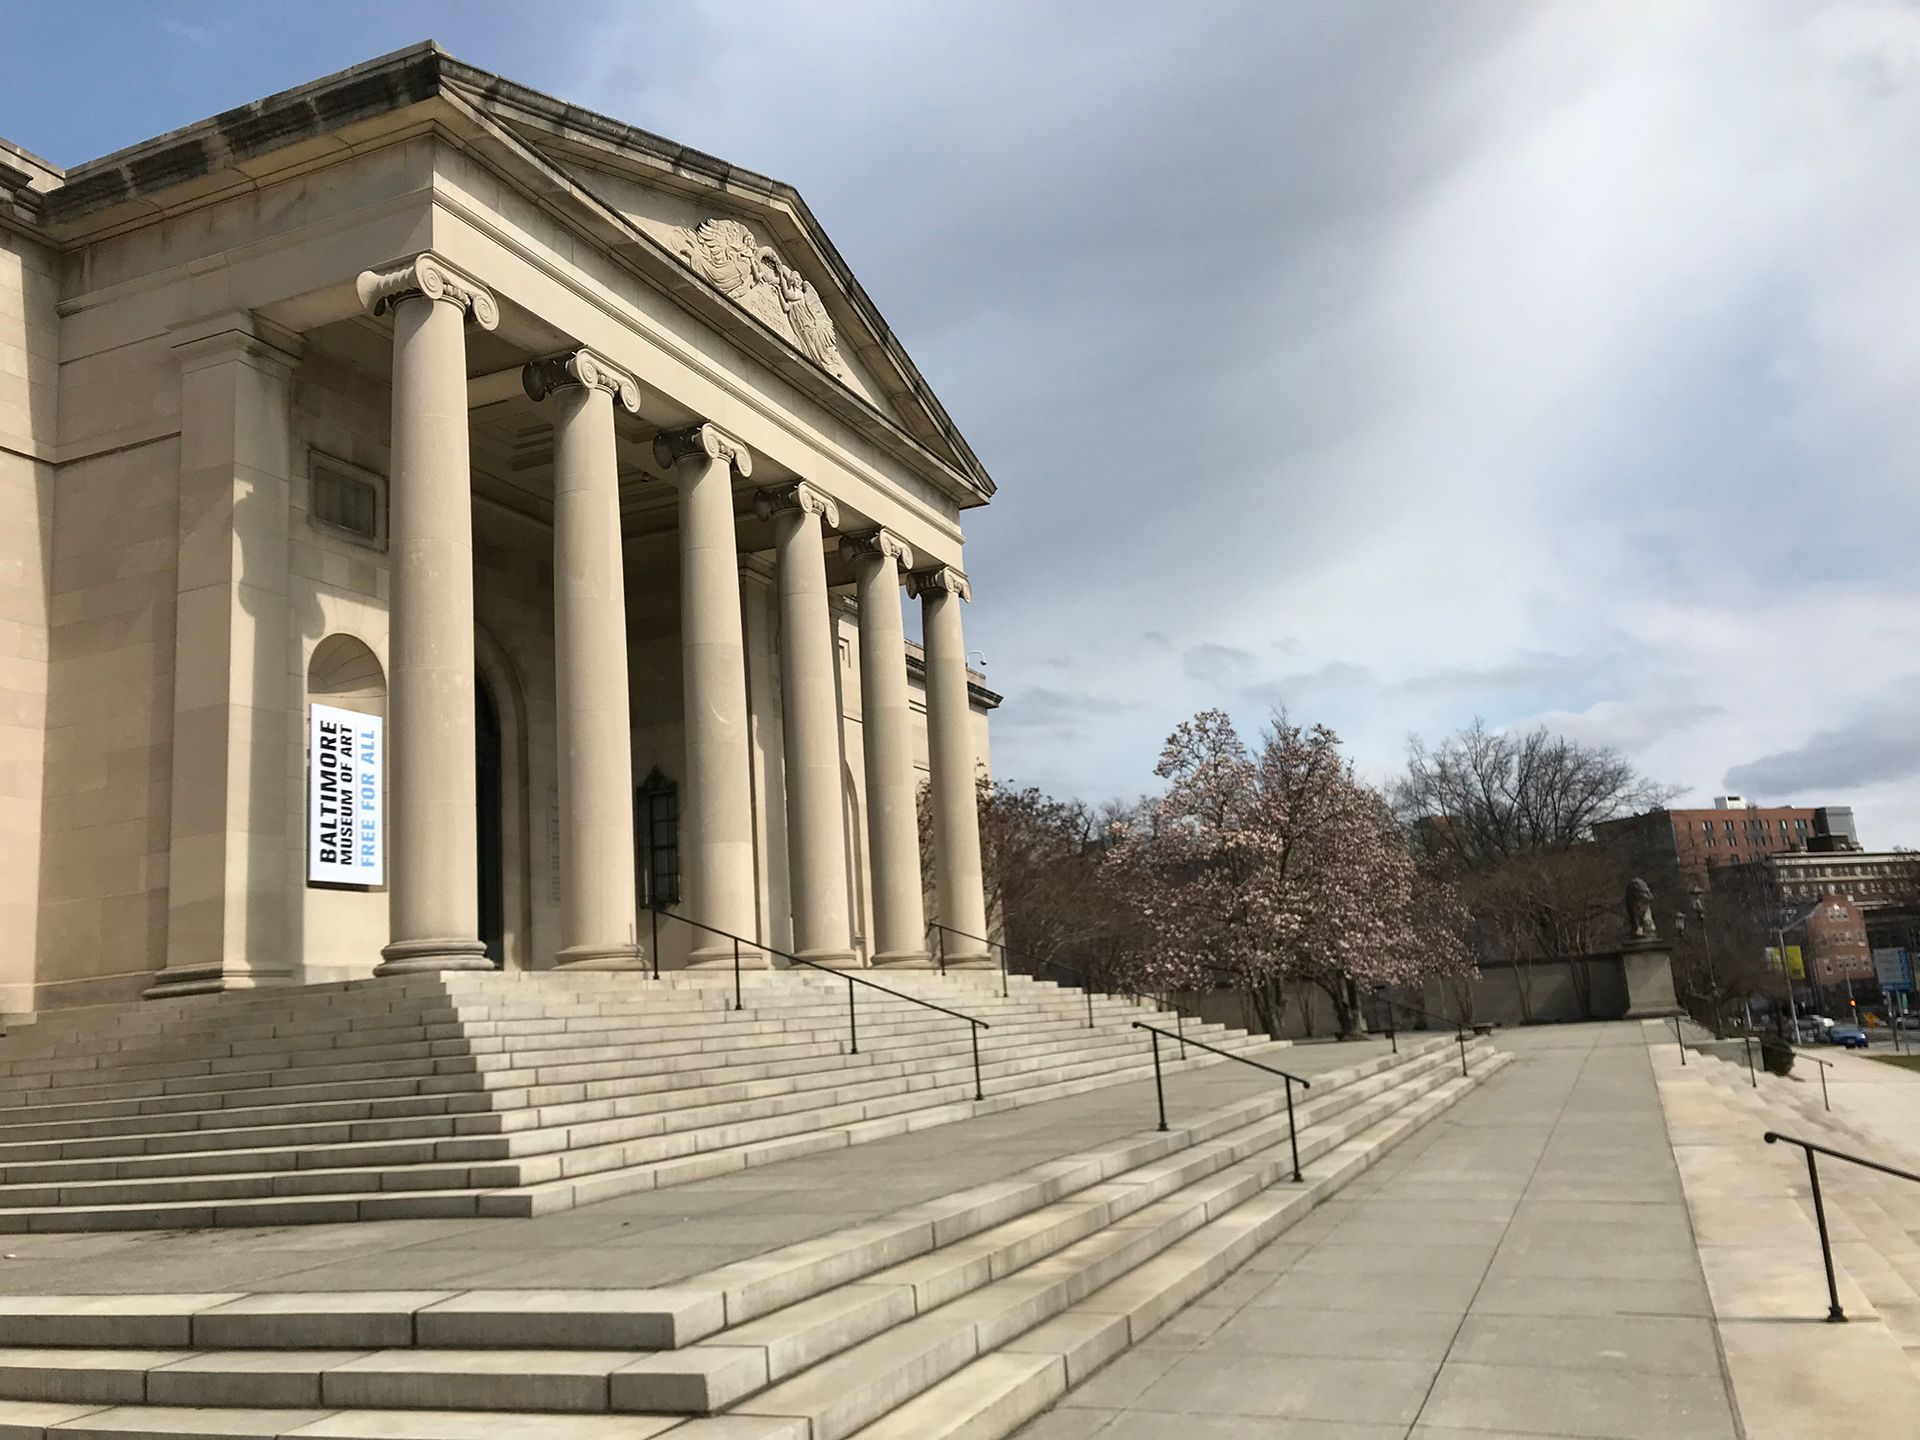 The Baltimore Museum of Art, which has taken an expansive view of the potential uses of proceeds from deaccessioning